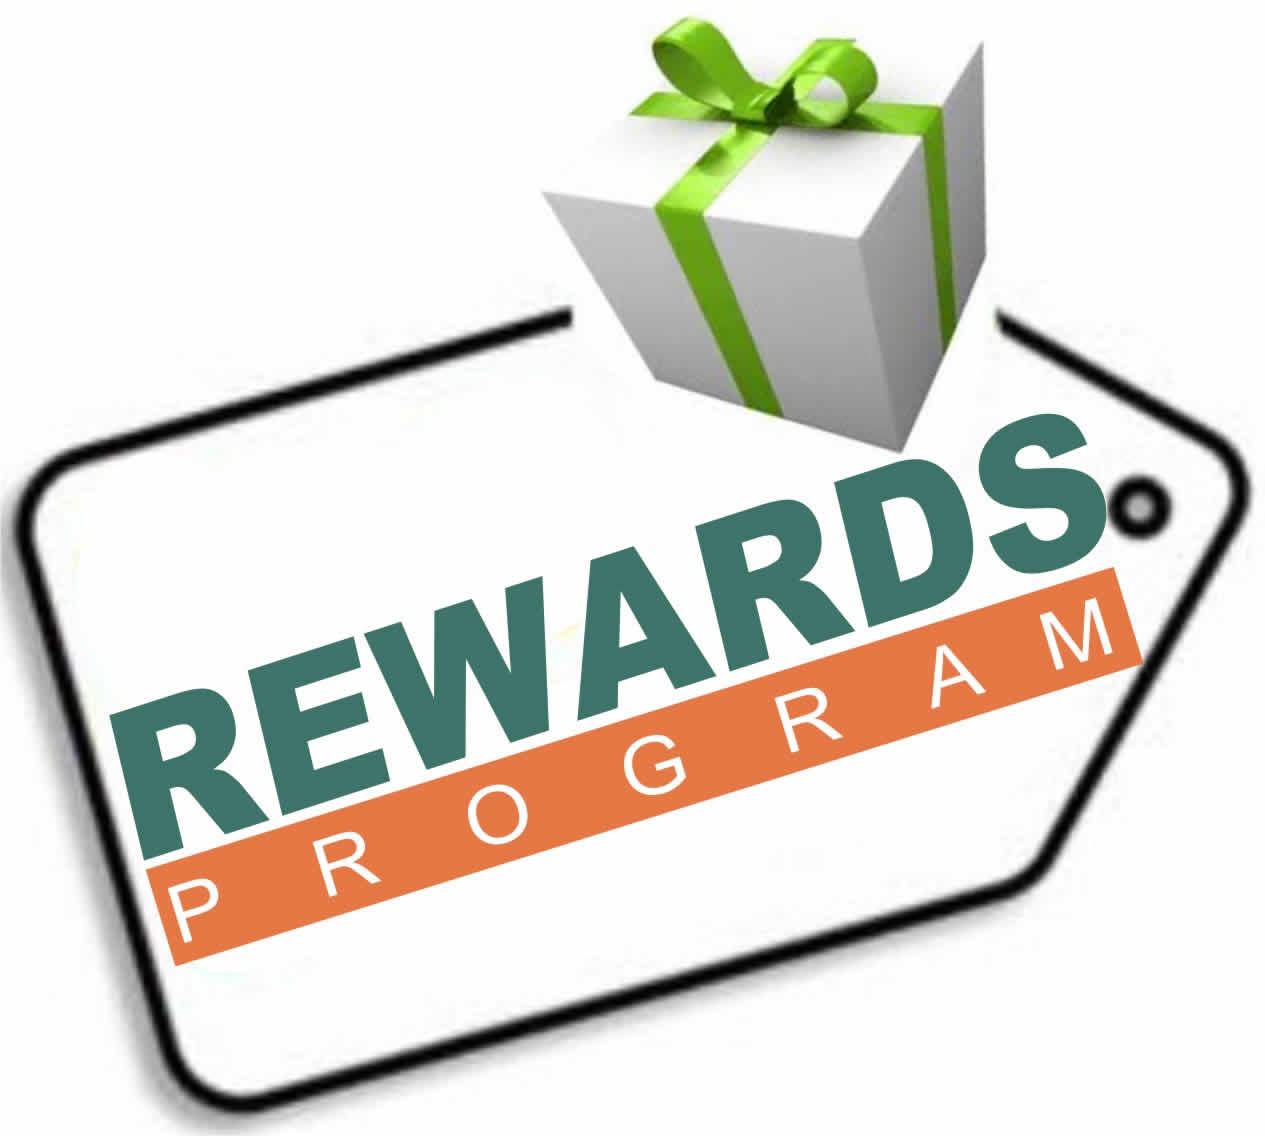 Grocery Reward Redemption Center. To redeem your $ Grocery Coupons Reward, please enter your Redemption PIN below. You'll then be asked register with your personal information. Then, you'll be given instant access to your Grocery Reward Program account, including your $ in grocery coupons, along with 25 other great savings benefits.